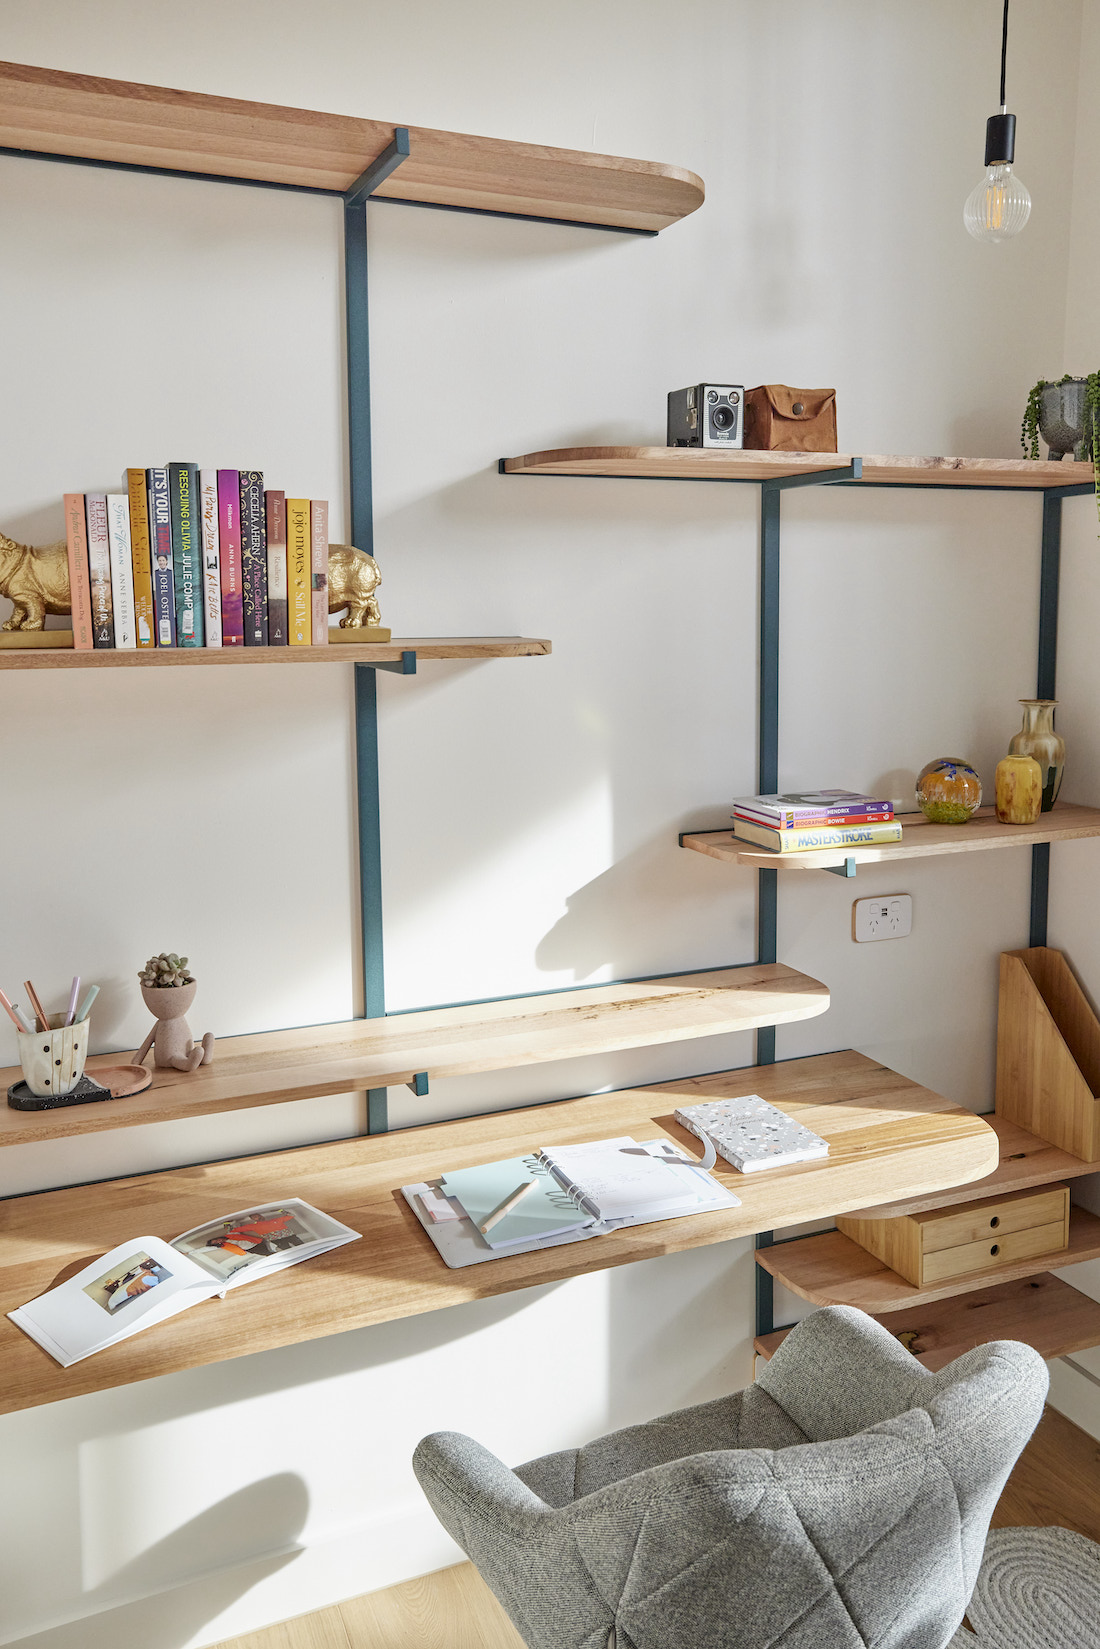 Shelving in study nook